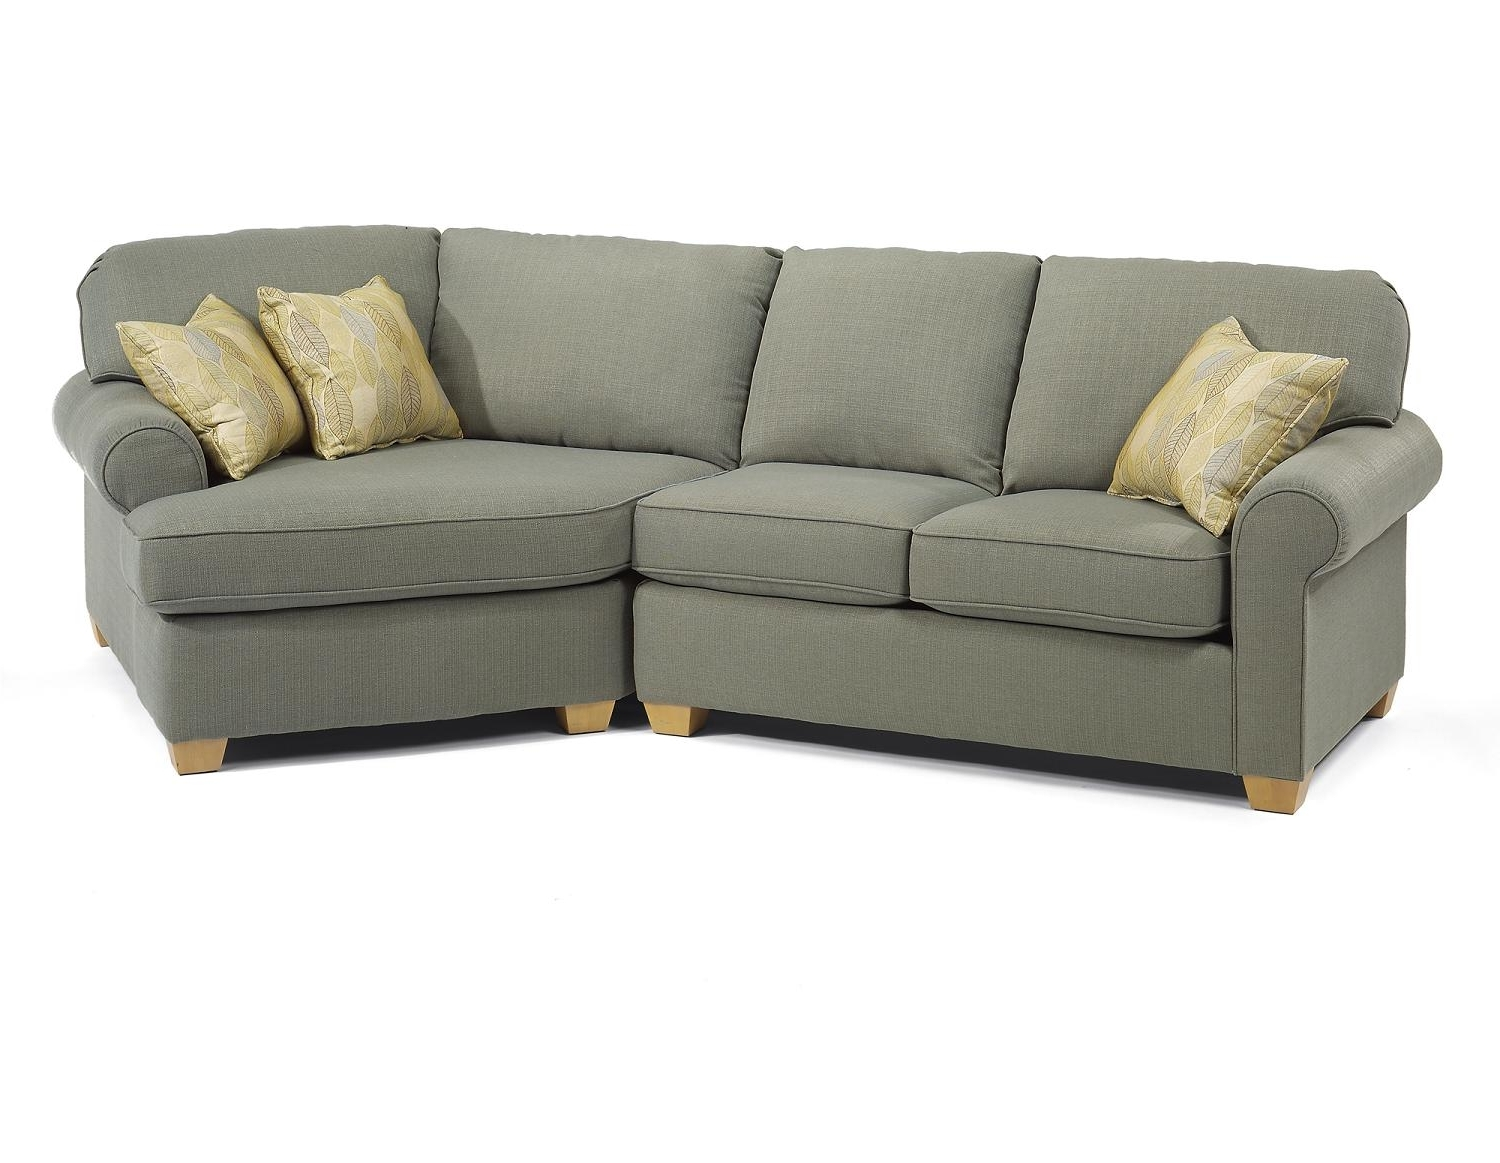 Chaise Couches In Recent Chaise Sofa – Interior4You (View 3 of 15)